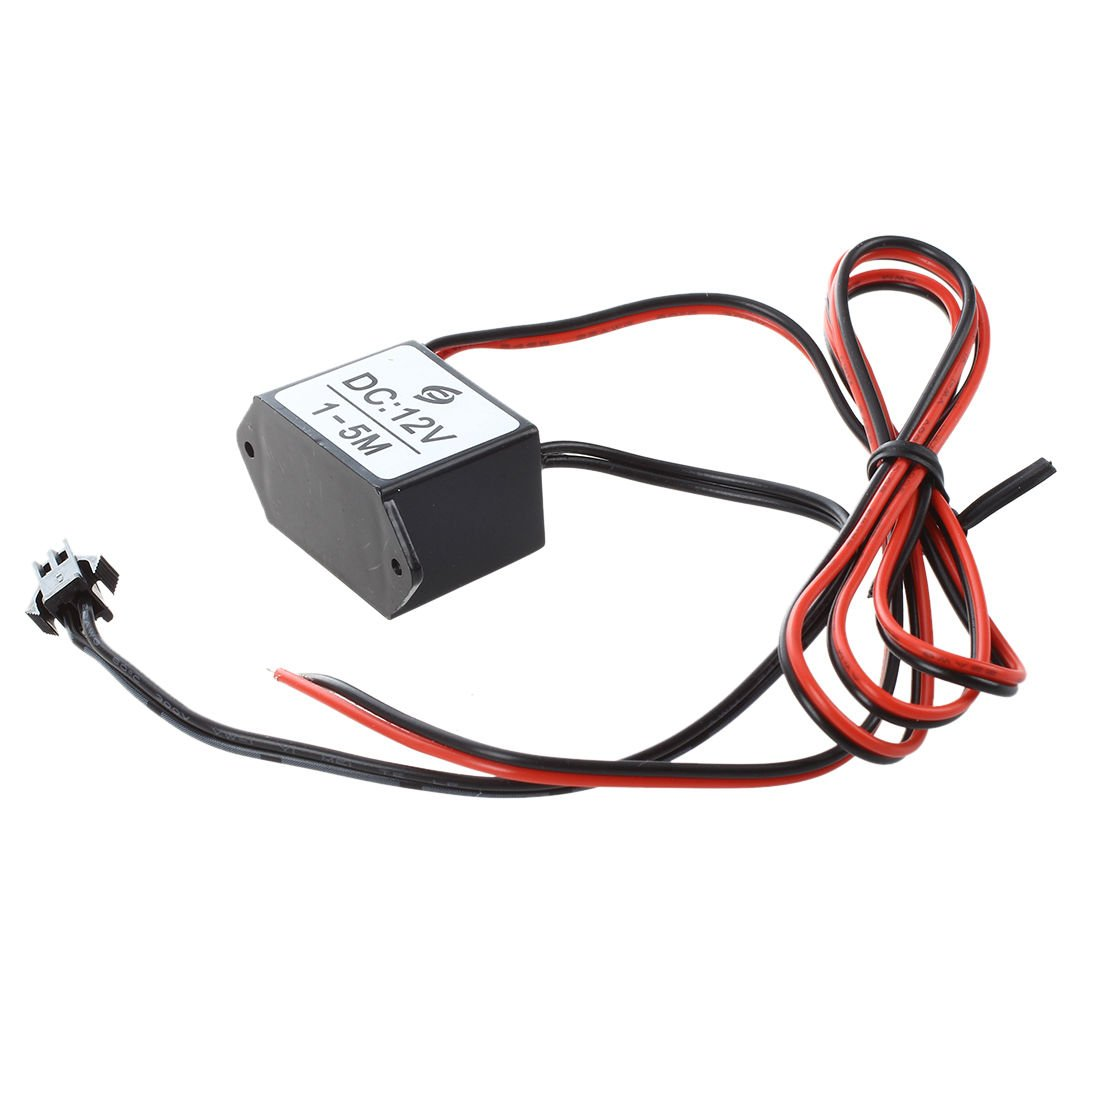 SODIAL(R) red-black cable DC 12V EL wire neon glow strip light driver unit inverter by SODIAL(R) (Image #3)